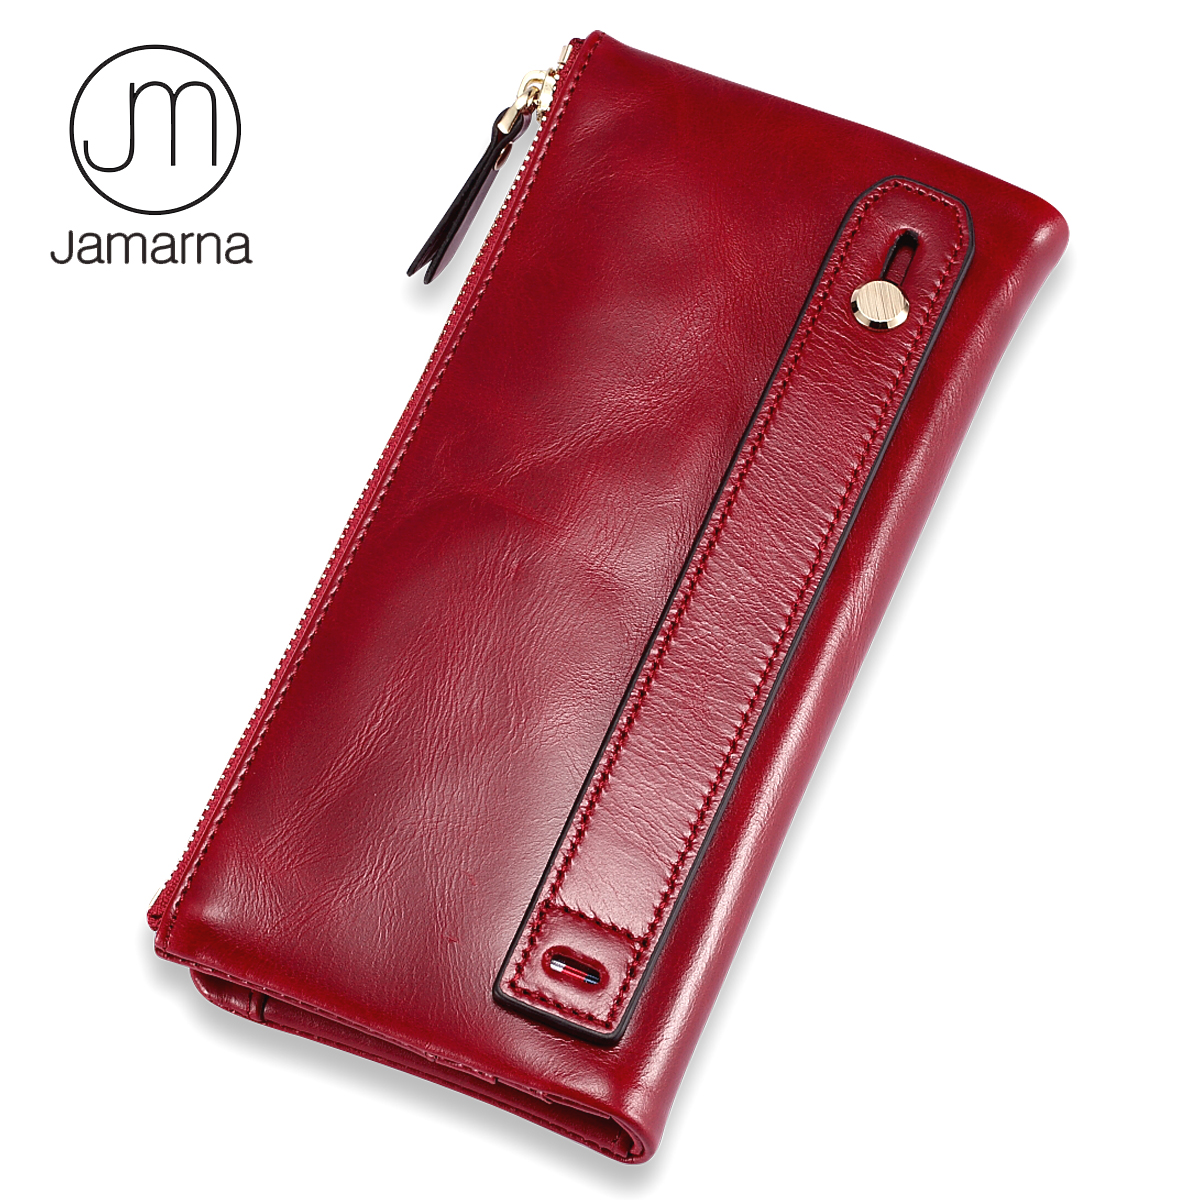 Jamarna Purse Genuine Leather Wallet Female Long Clutch Women Purse With Coin Pocket Women Wallets With Card Holders Purse Women jamarna genuine leather wallet for wallet long clutch zipper packet coin purse card holder phone wallet brand free shipping new